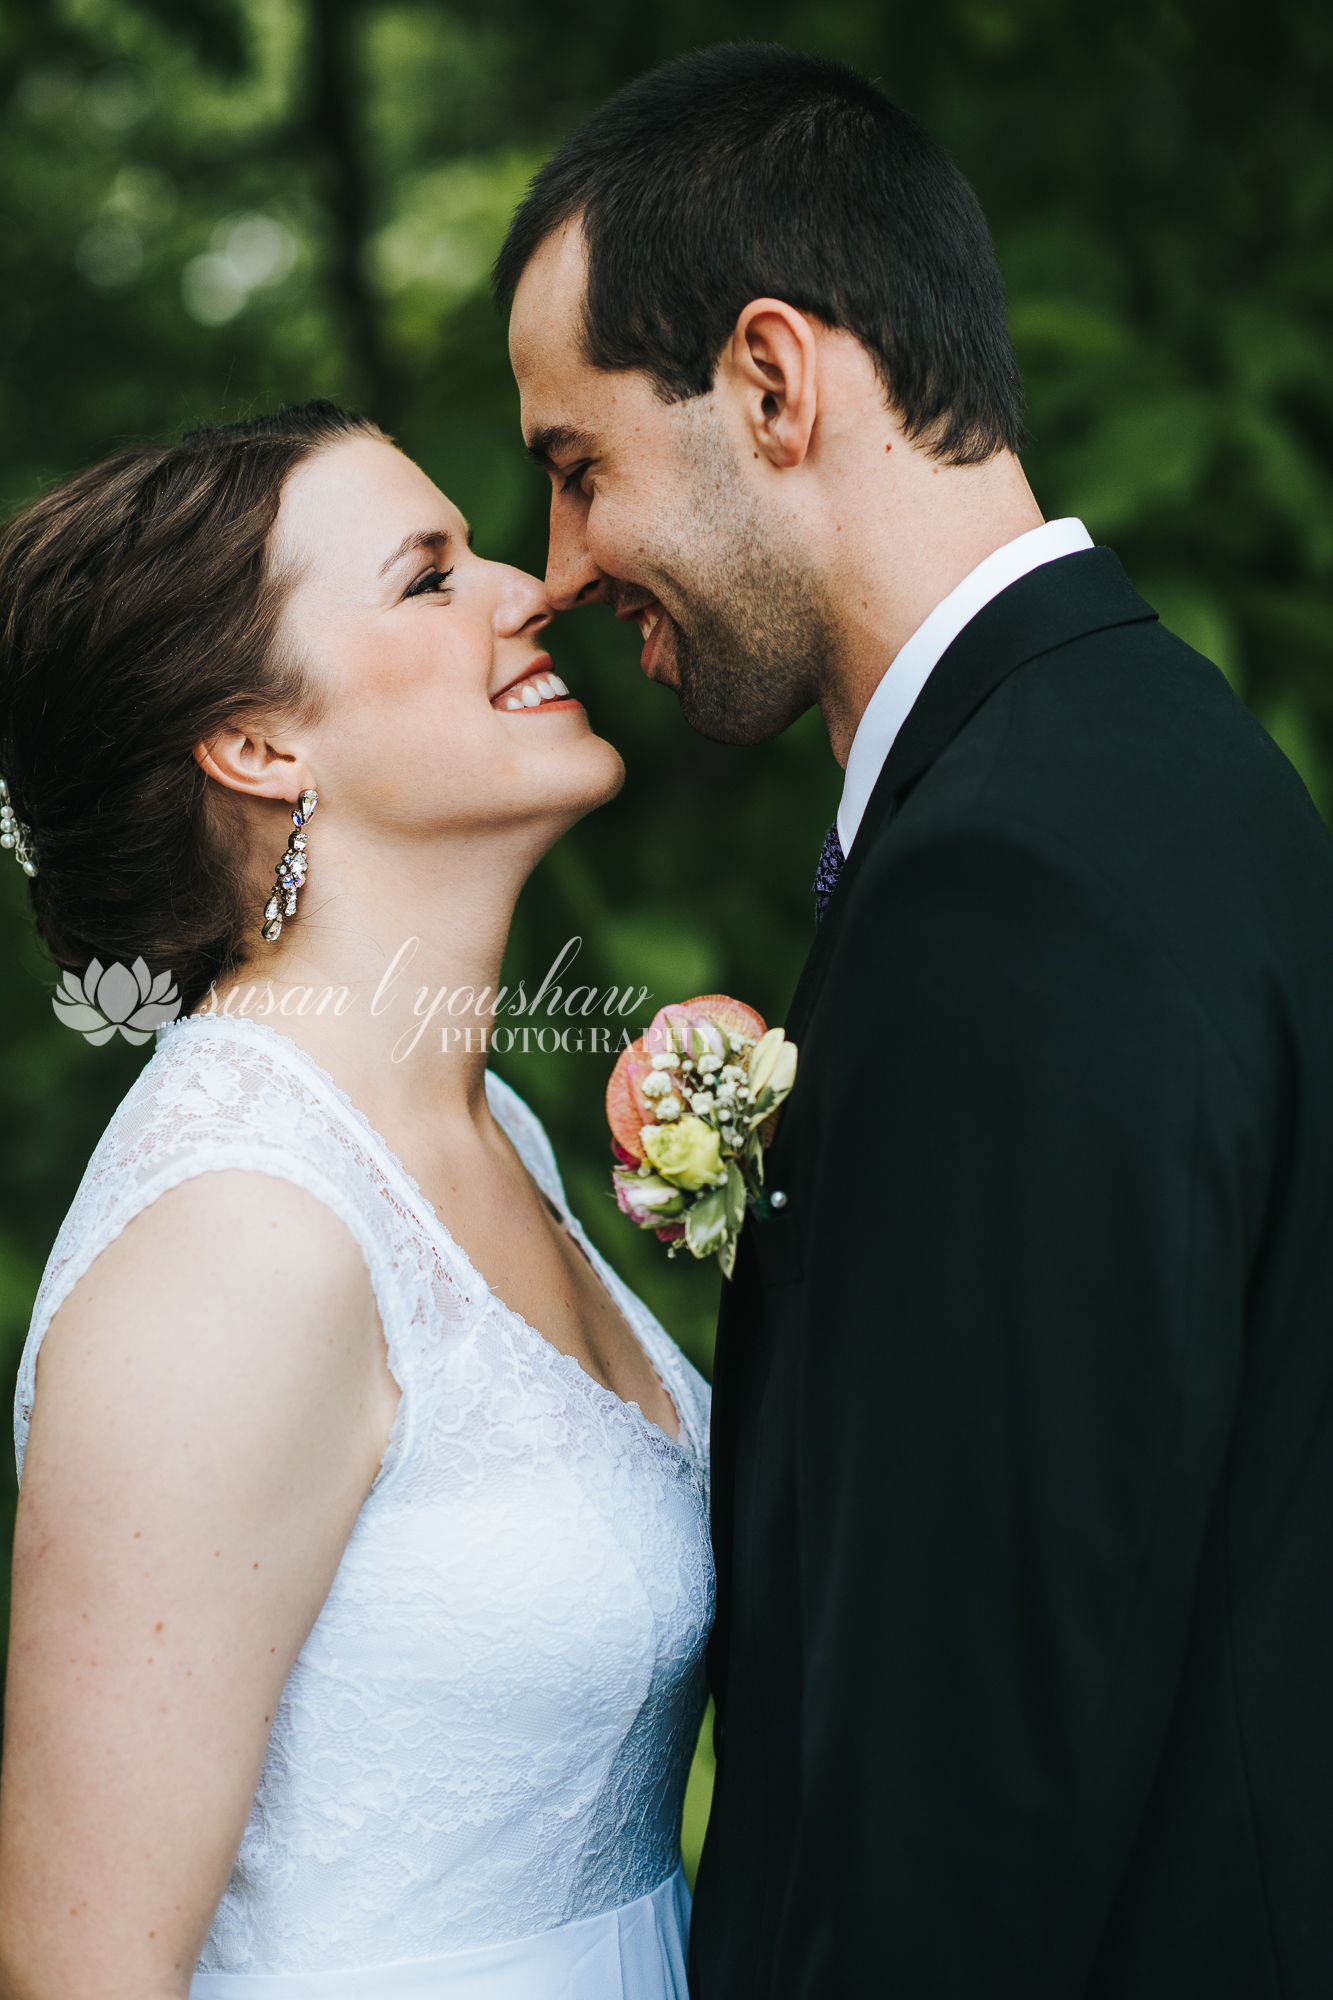 Adena and  Erik Wedding 05-17-2019 SLY Photography-32.jpg